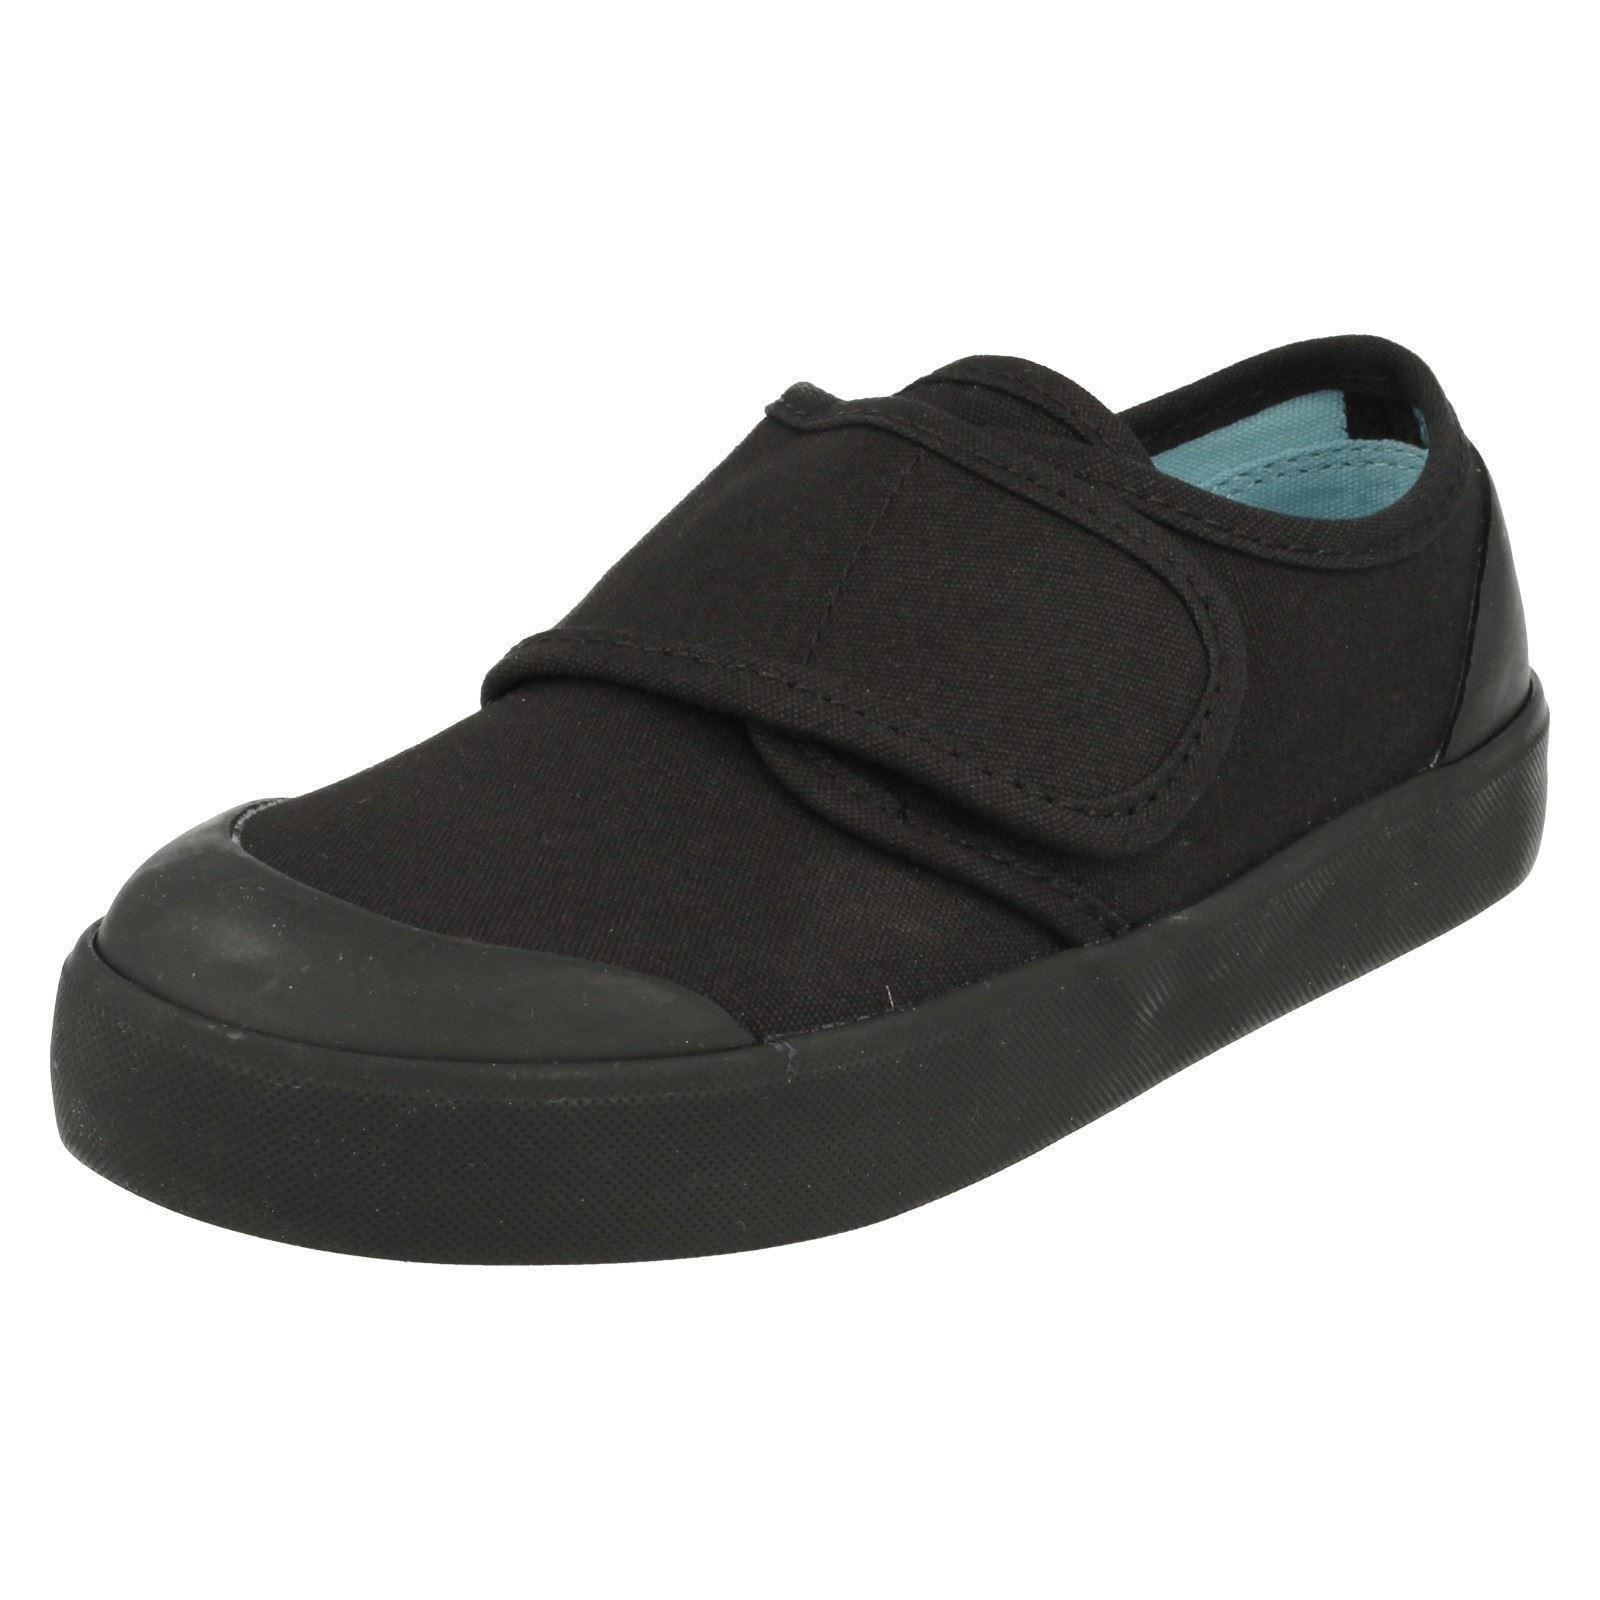 a8ac5d56be8 Unisex Childrens Startrite School PUMPS Skip Black UK 10.5 F. About this  product. Picture 1 of 10  Picture 2 of 10 ...